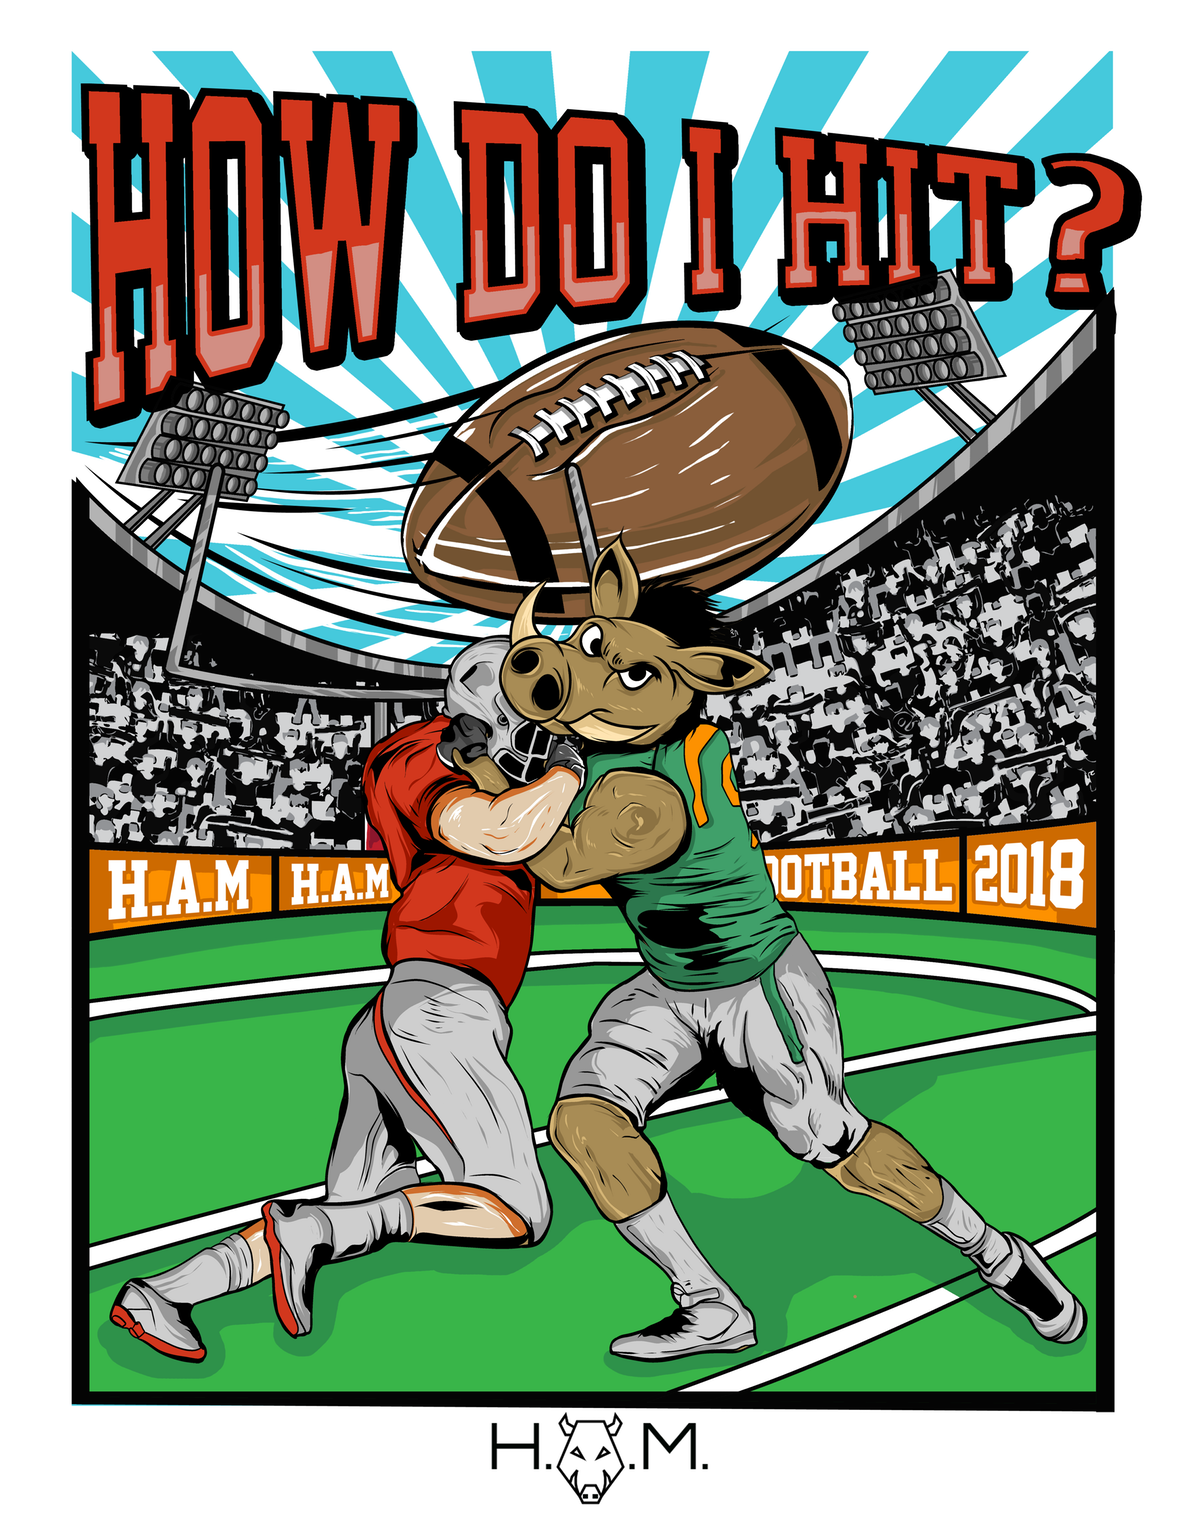 H.A.M. HOW DO I HIT? T-SHIRTS